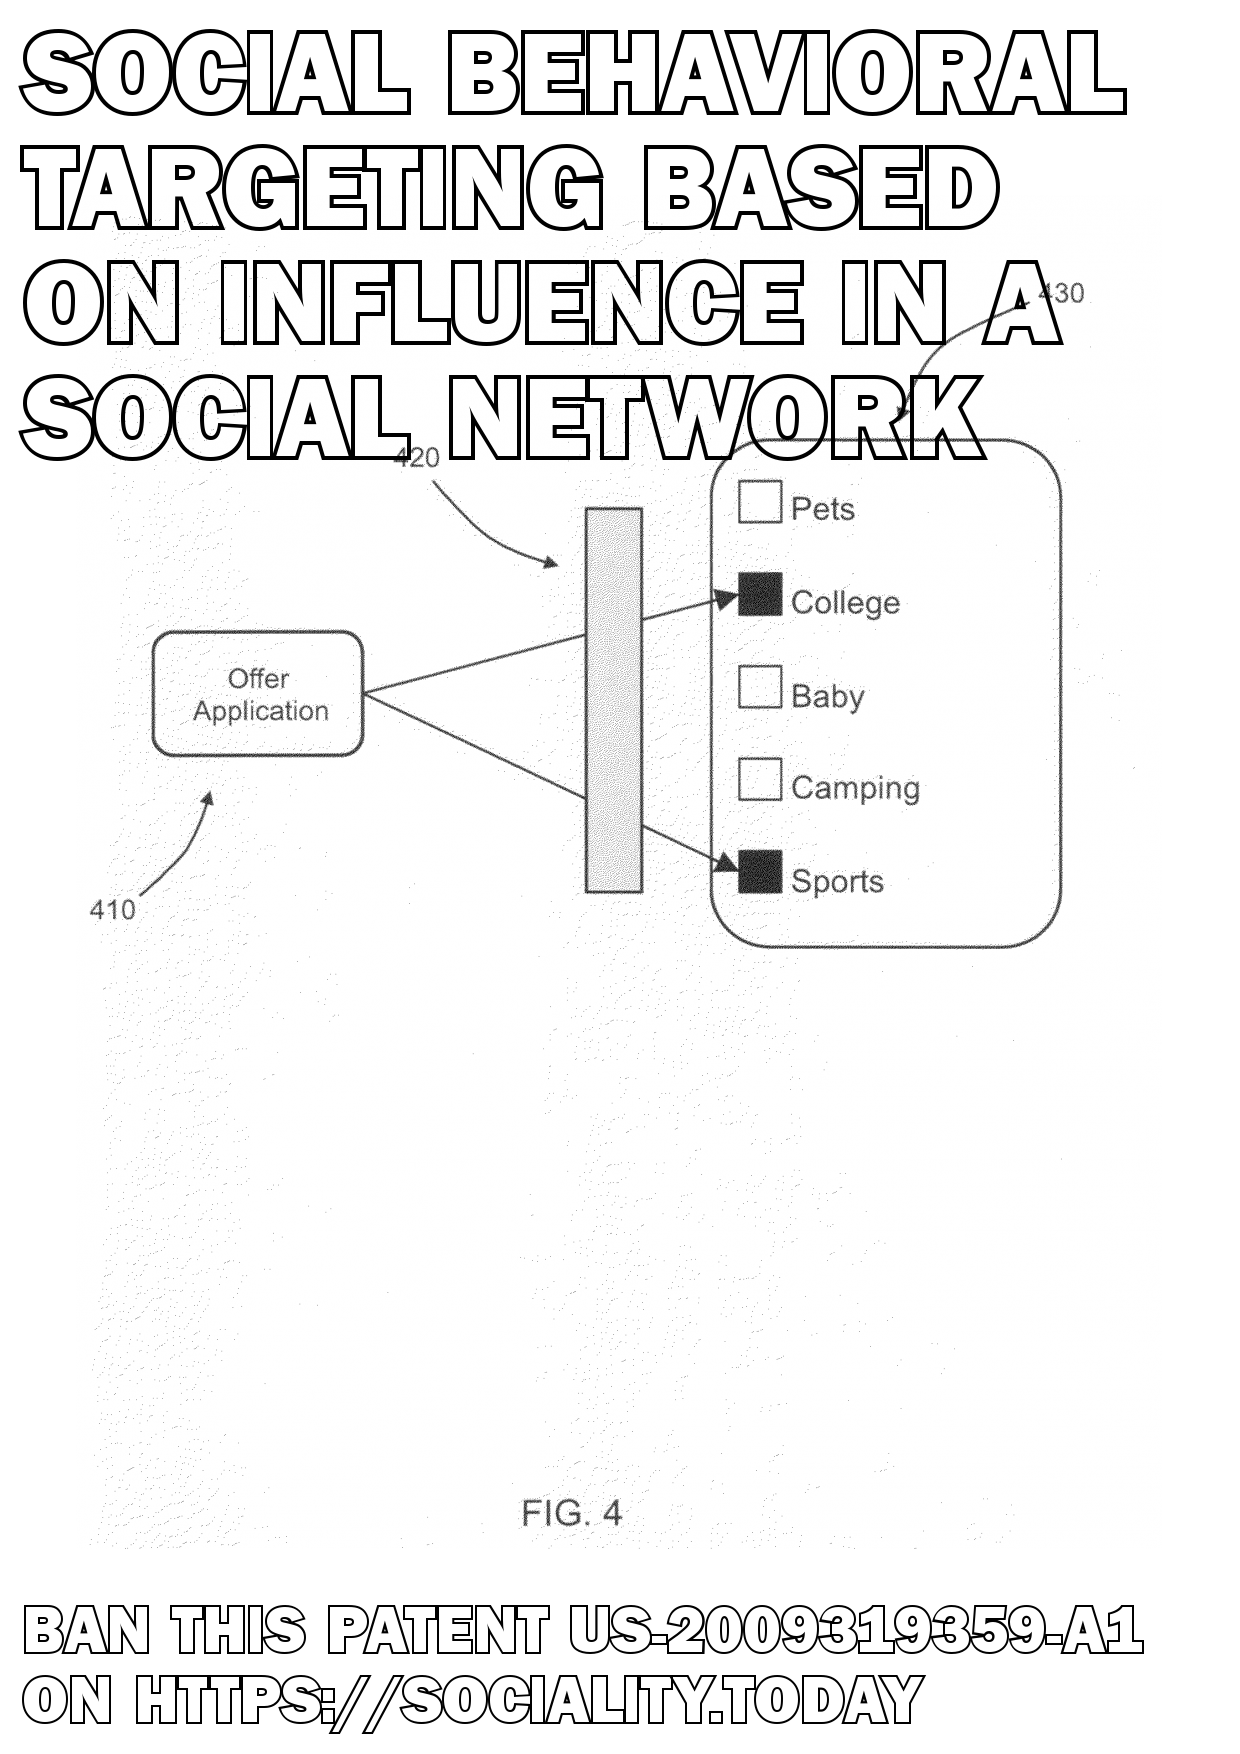 Social behavioral targeting based on influence in a social network  - US-2009319359-A1